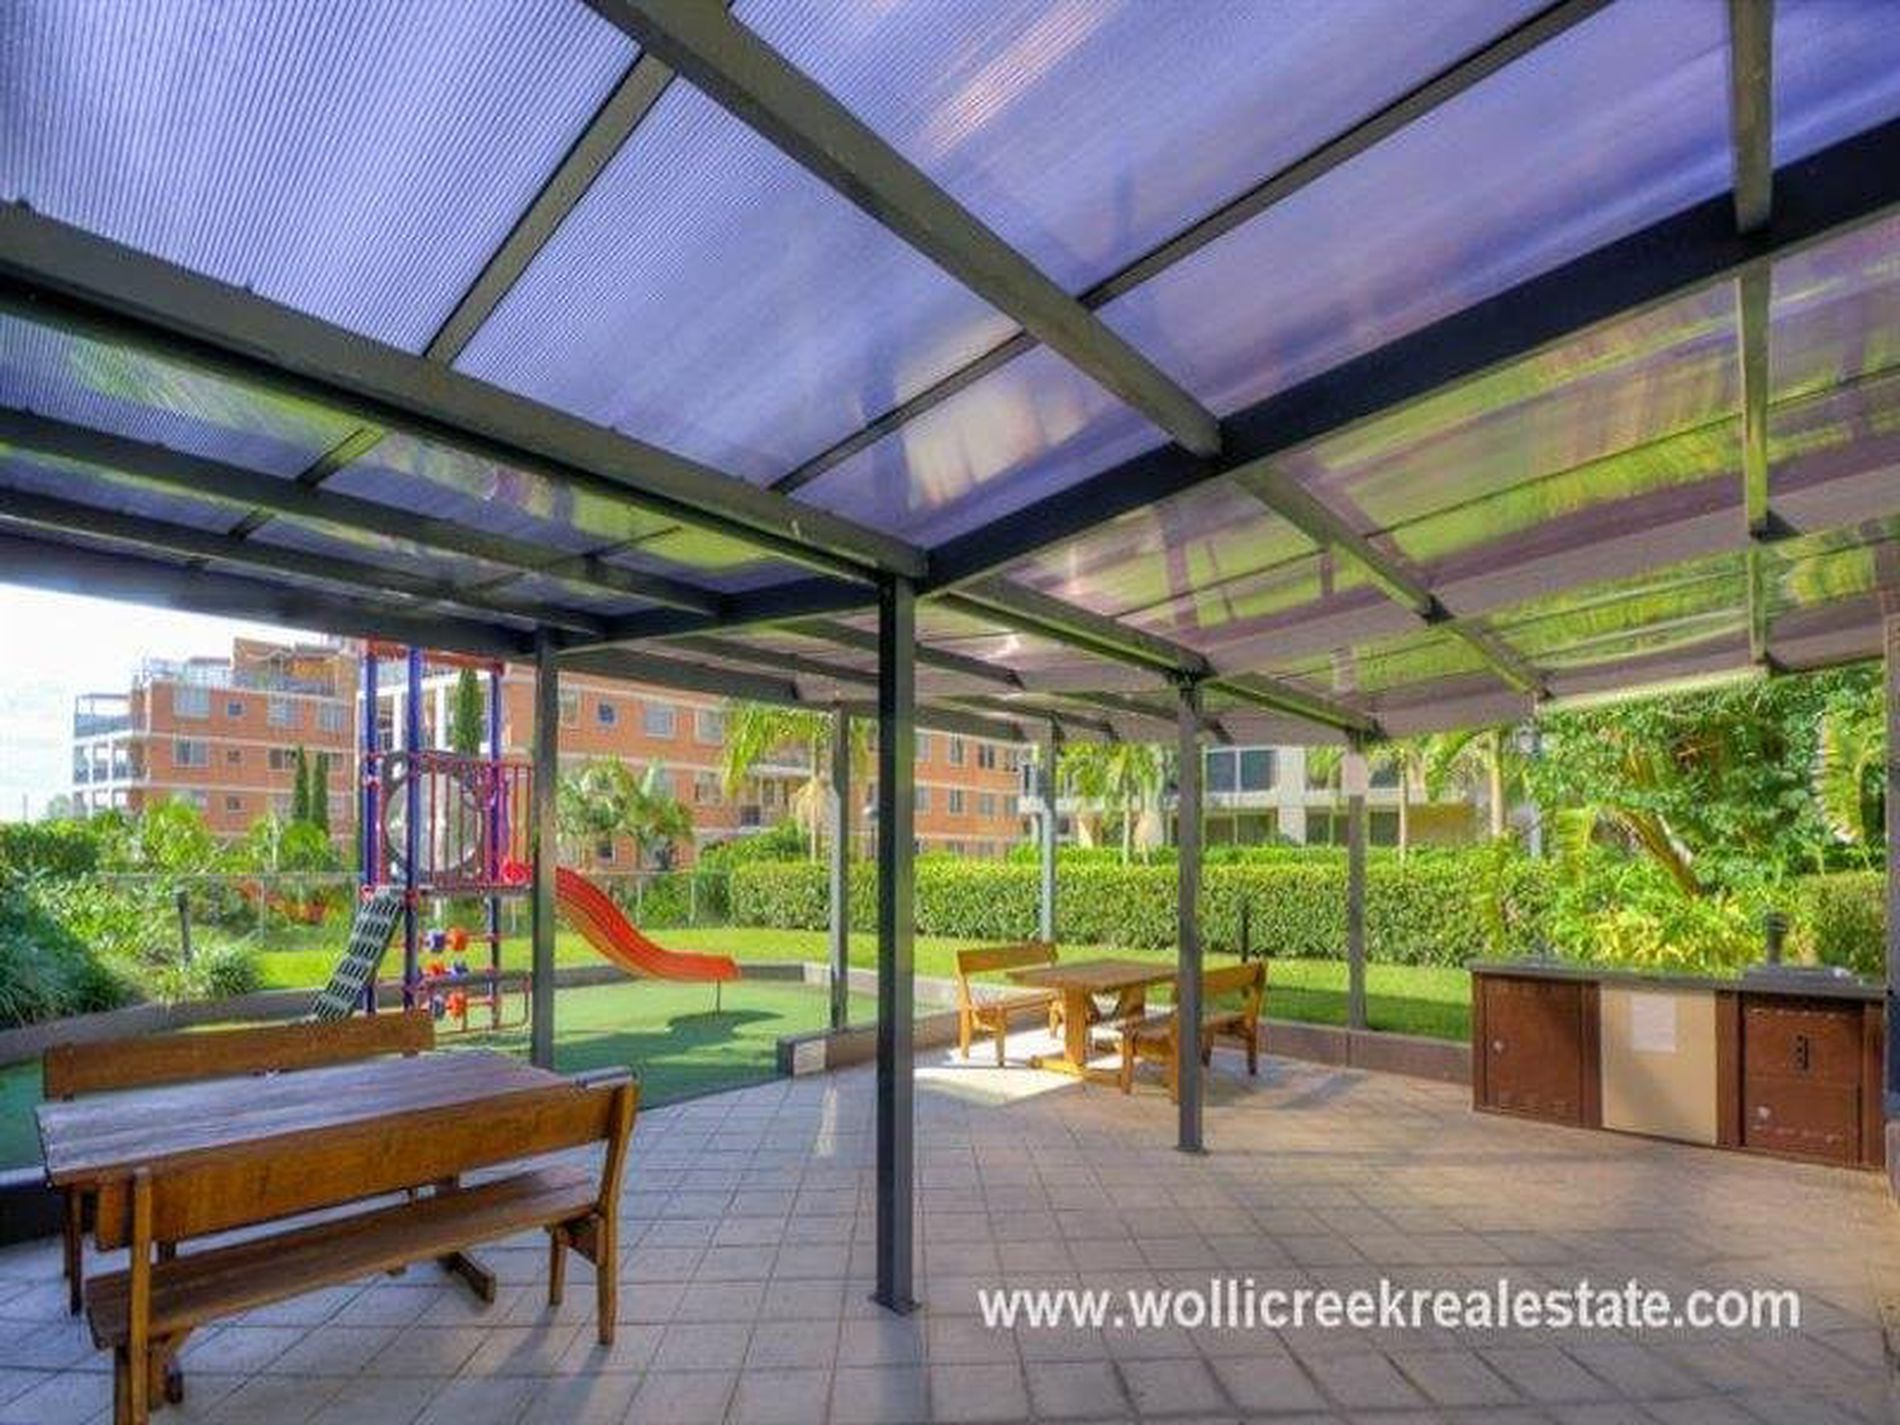 25 / 95 Bonar Street, Wolli Creek